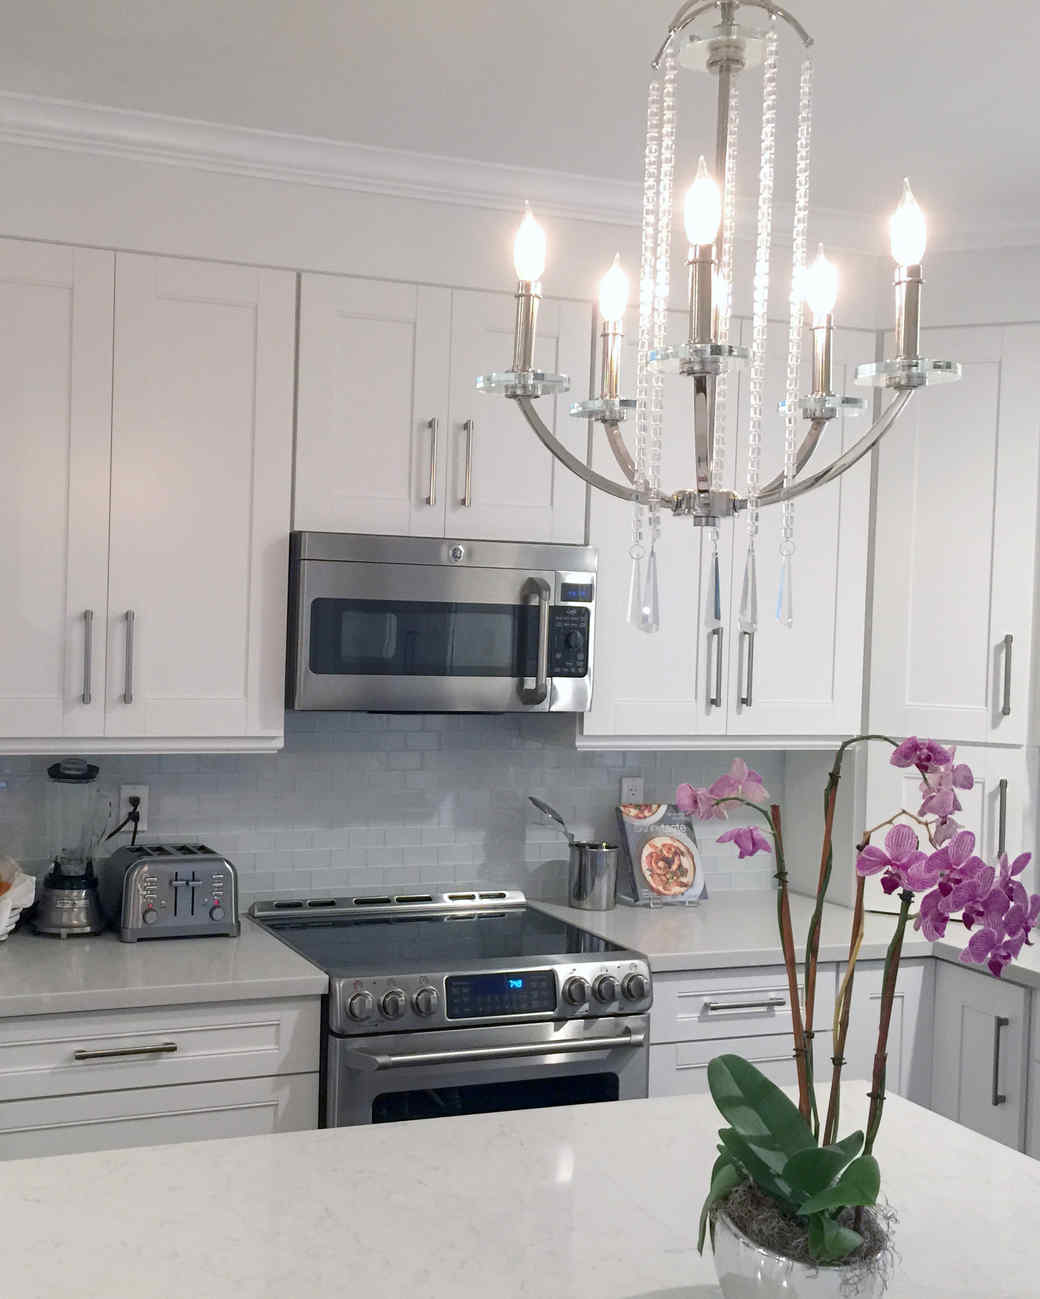 Illuminating Kitchen Lighting: 6 Bright Kitchen Lighting Ideas: See How New Fixtures